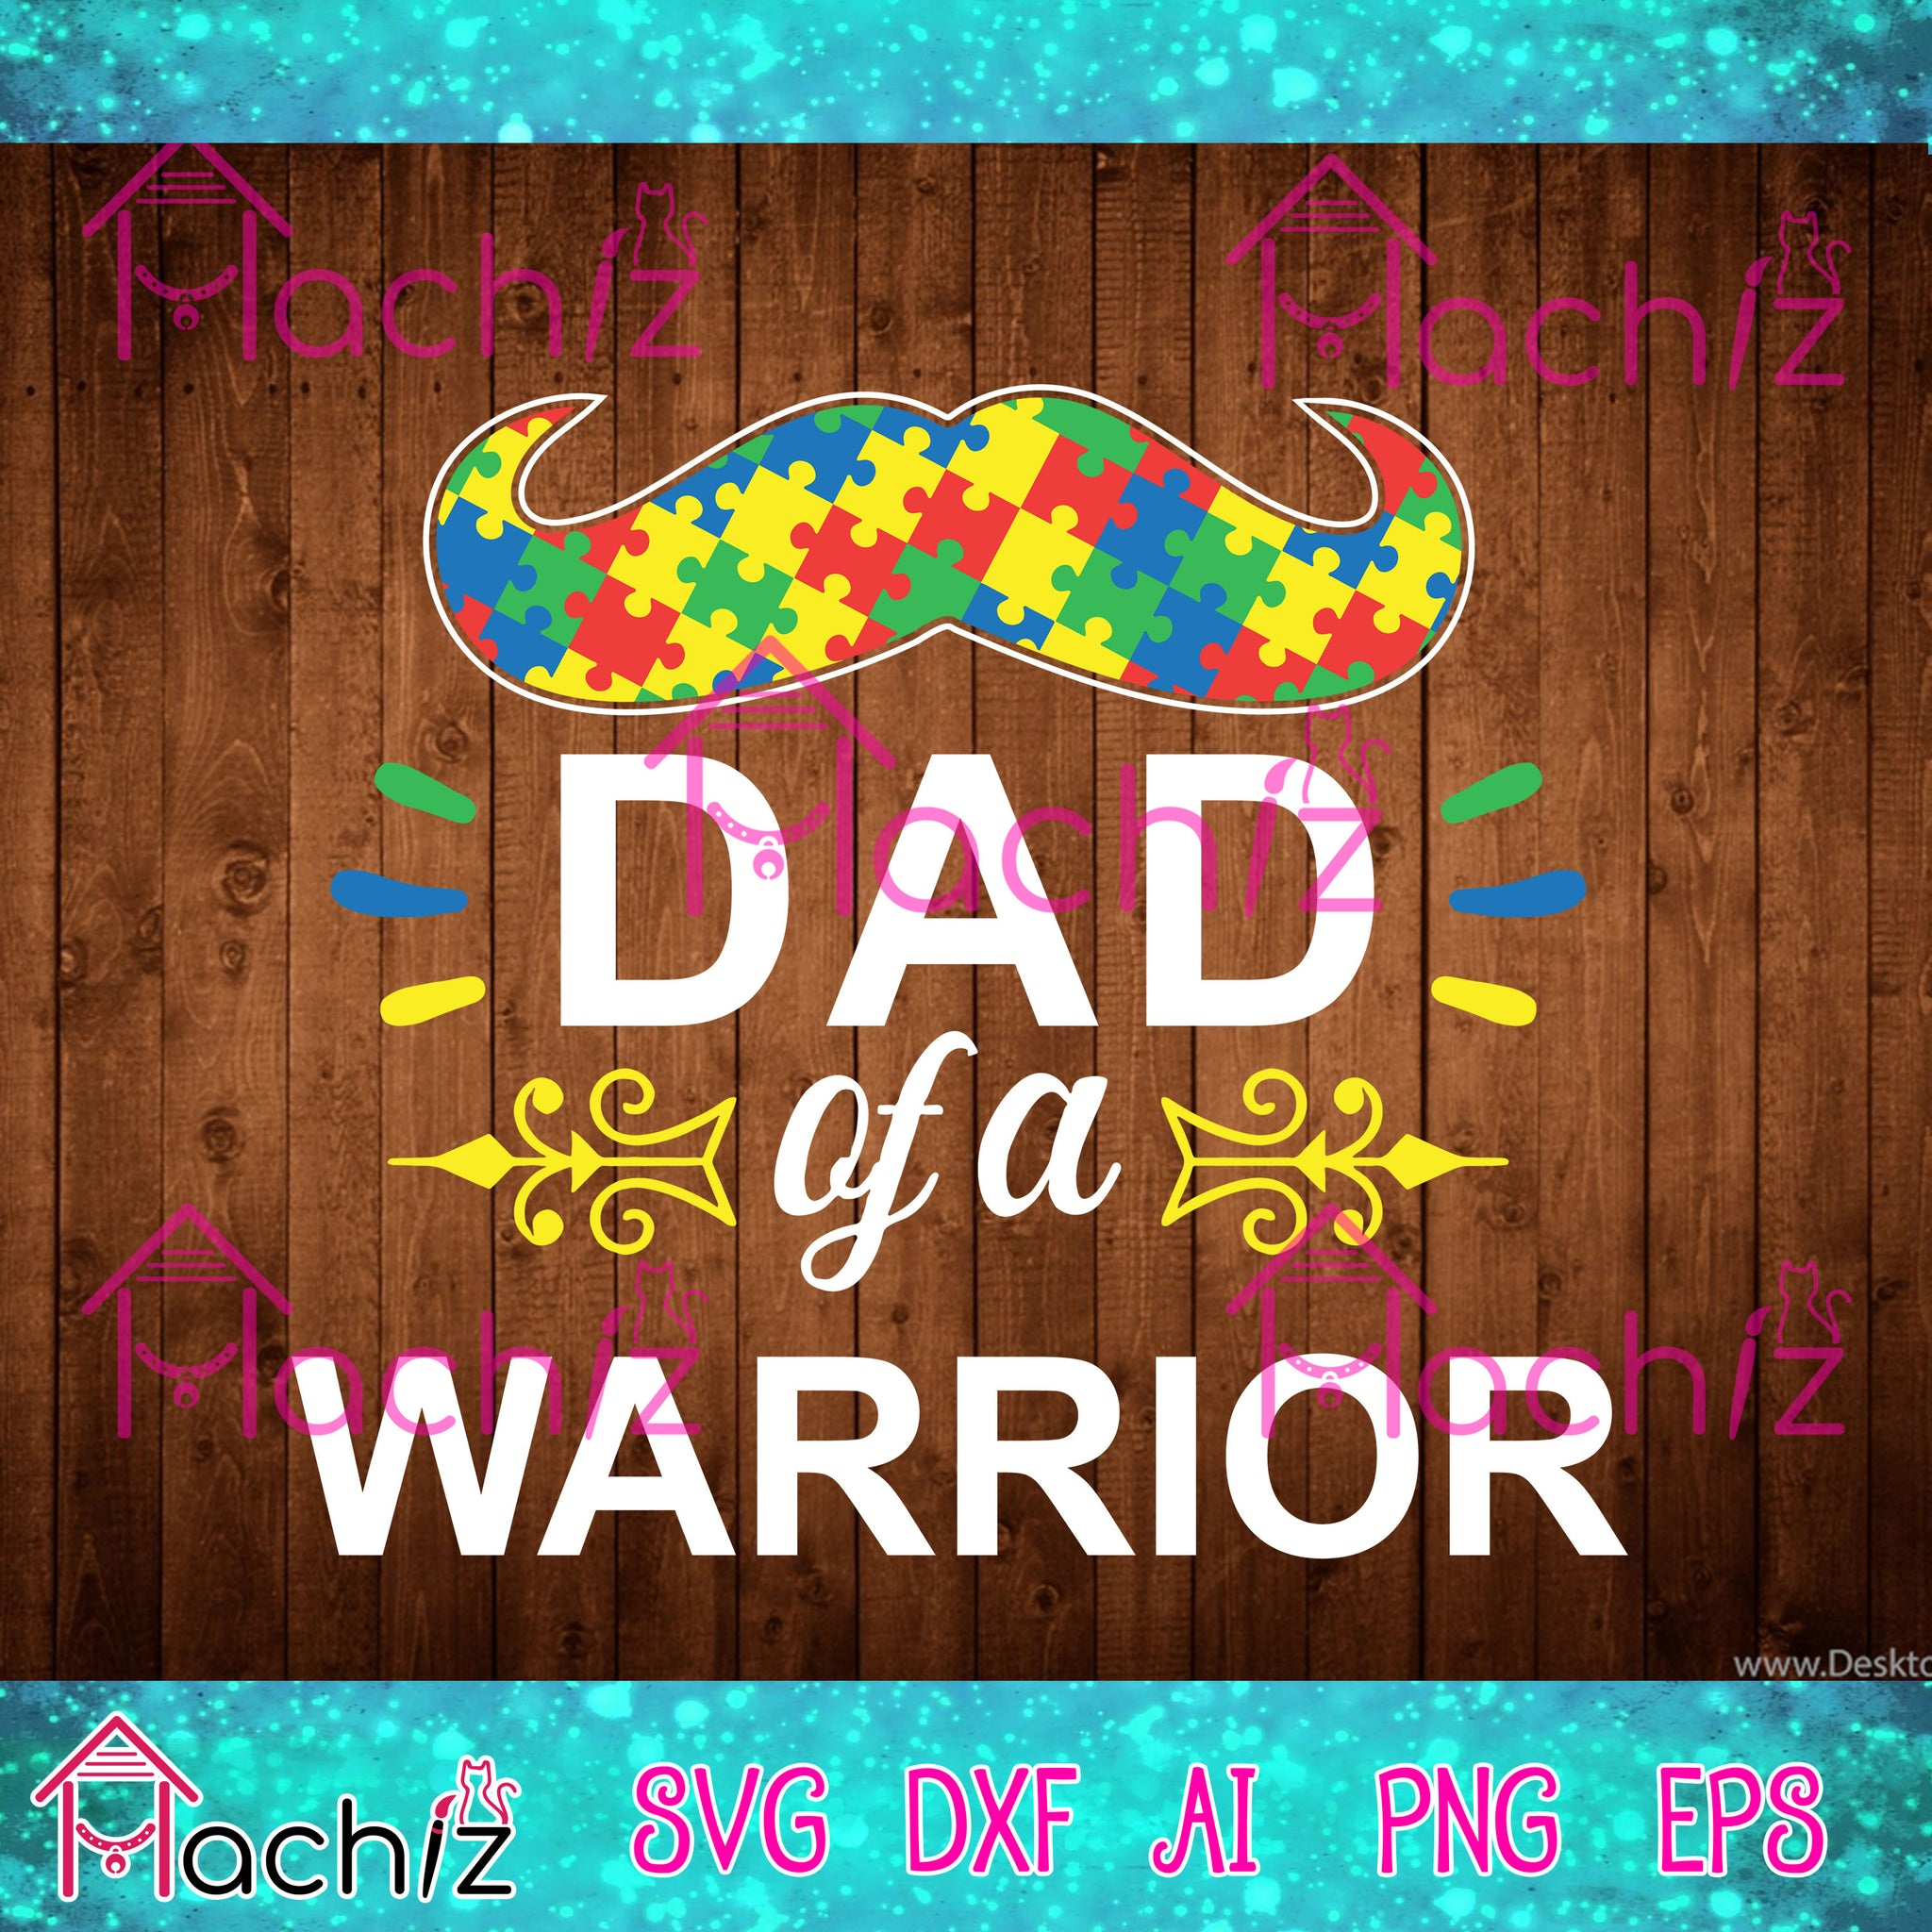 Dad of a warrior ,dad of a warrior svg, father svg,father's day, dad svg, autism svg, vector,svg, eps, dxf, Png Silhouette Cameo or Cricut Digital Download Files